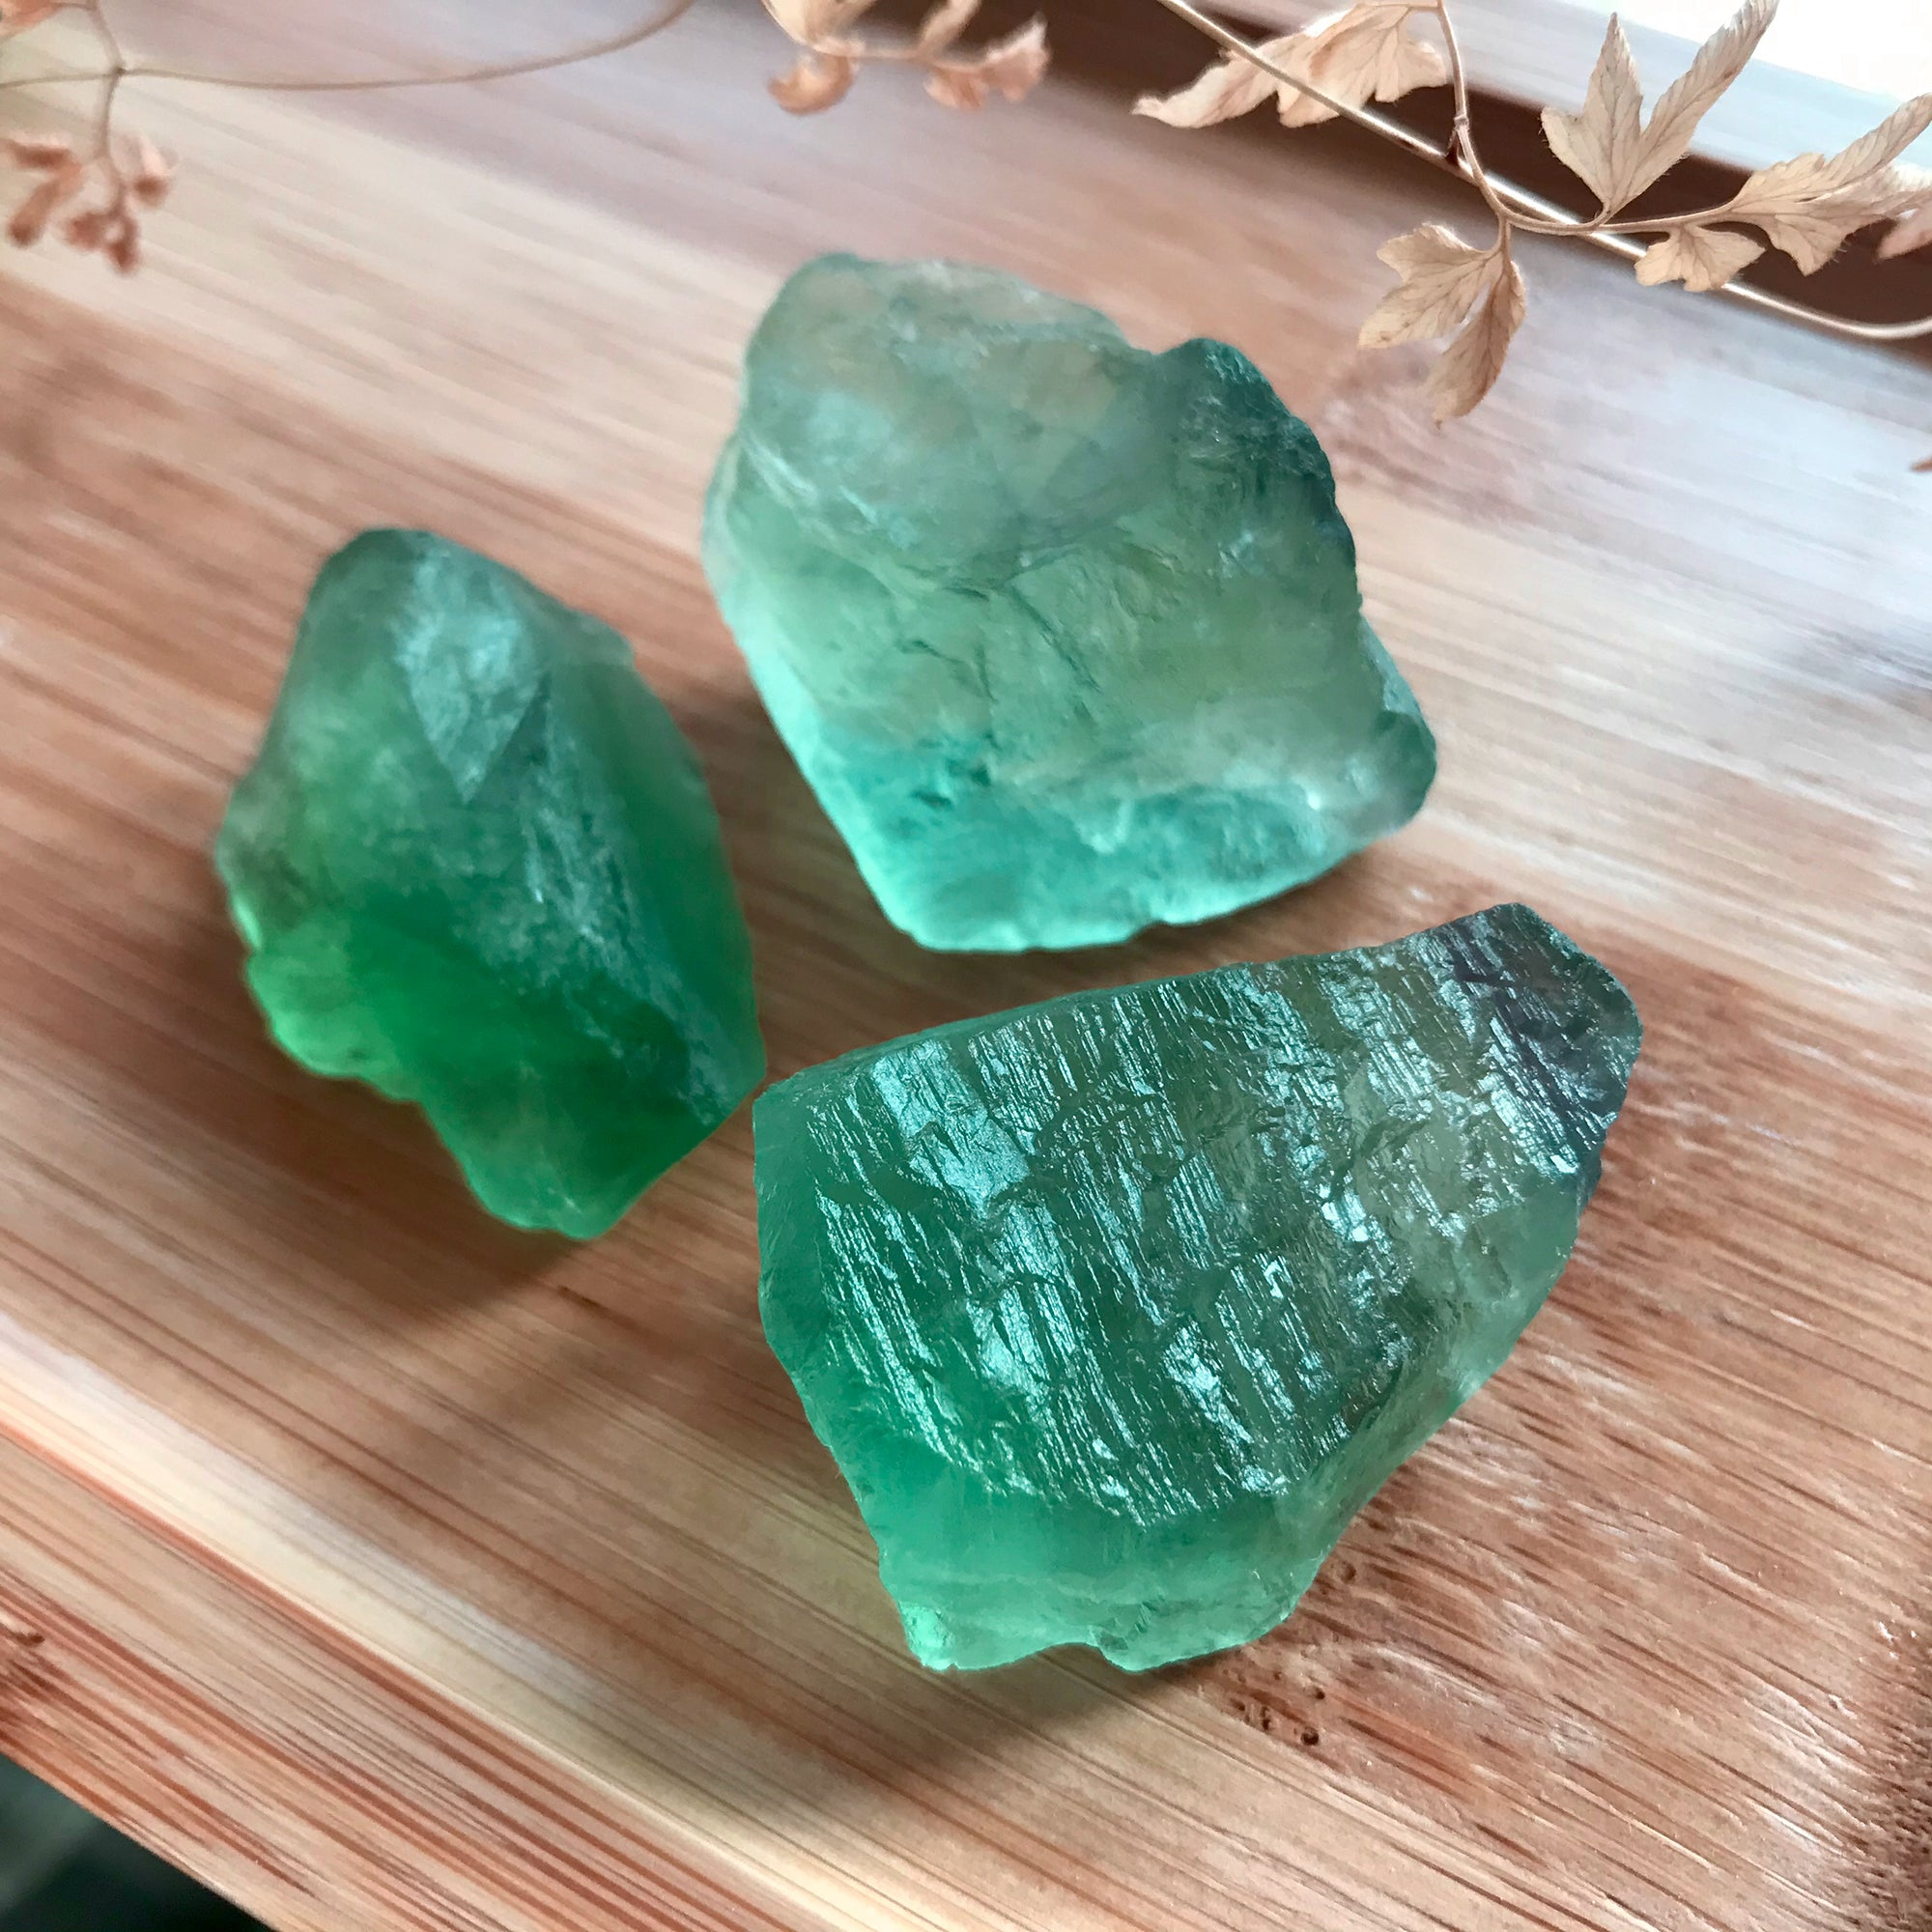 Set of 3 - Genuine Raw Glowing Green Flourite Crystals | Anahata Heart Chakra Activation | Cleanse, Purify, and Heal Past Heartbreaks